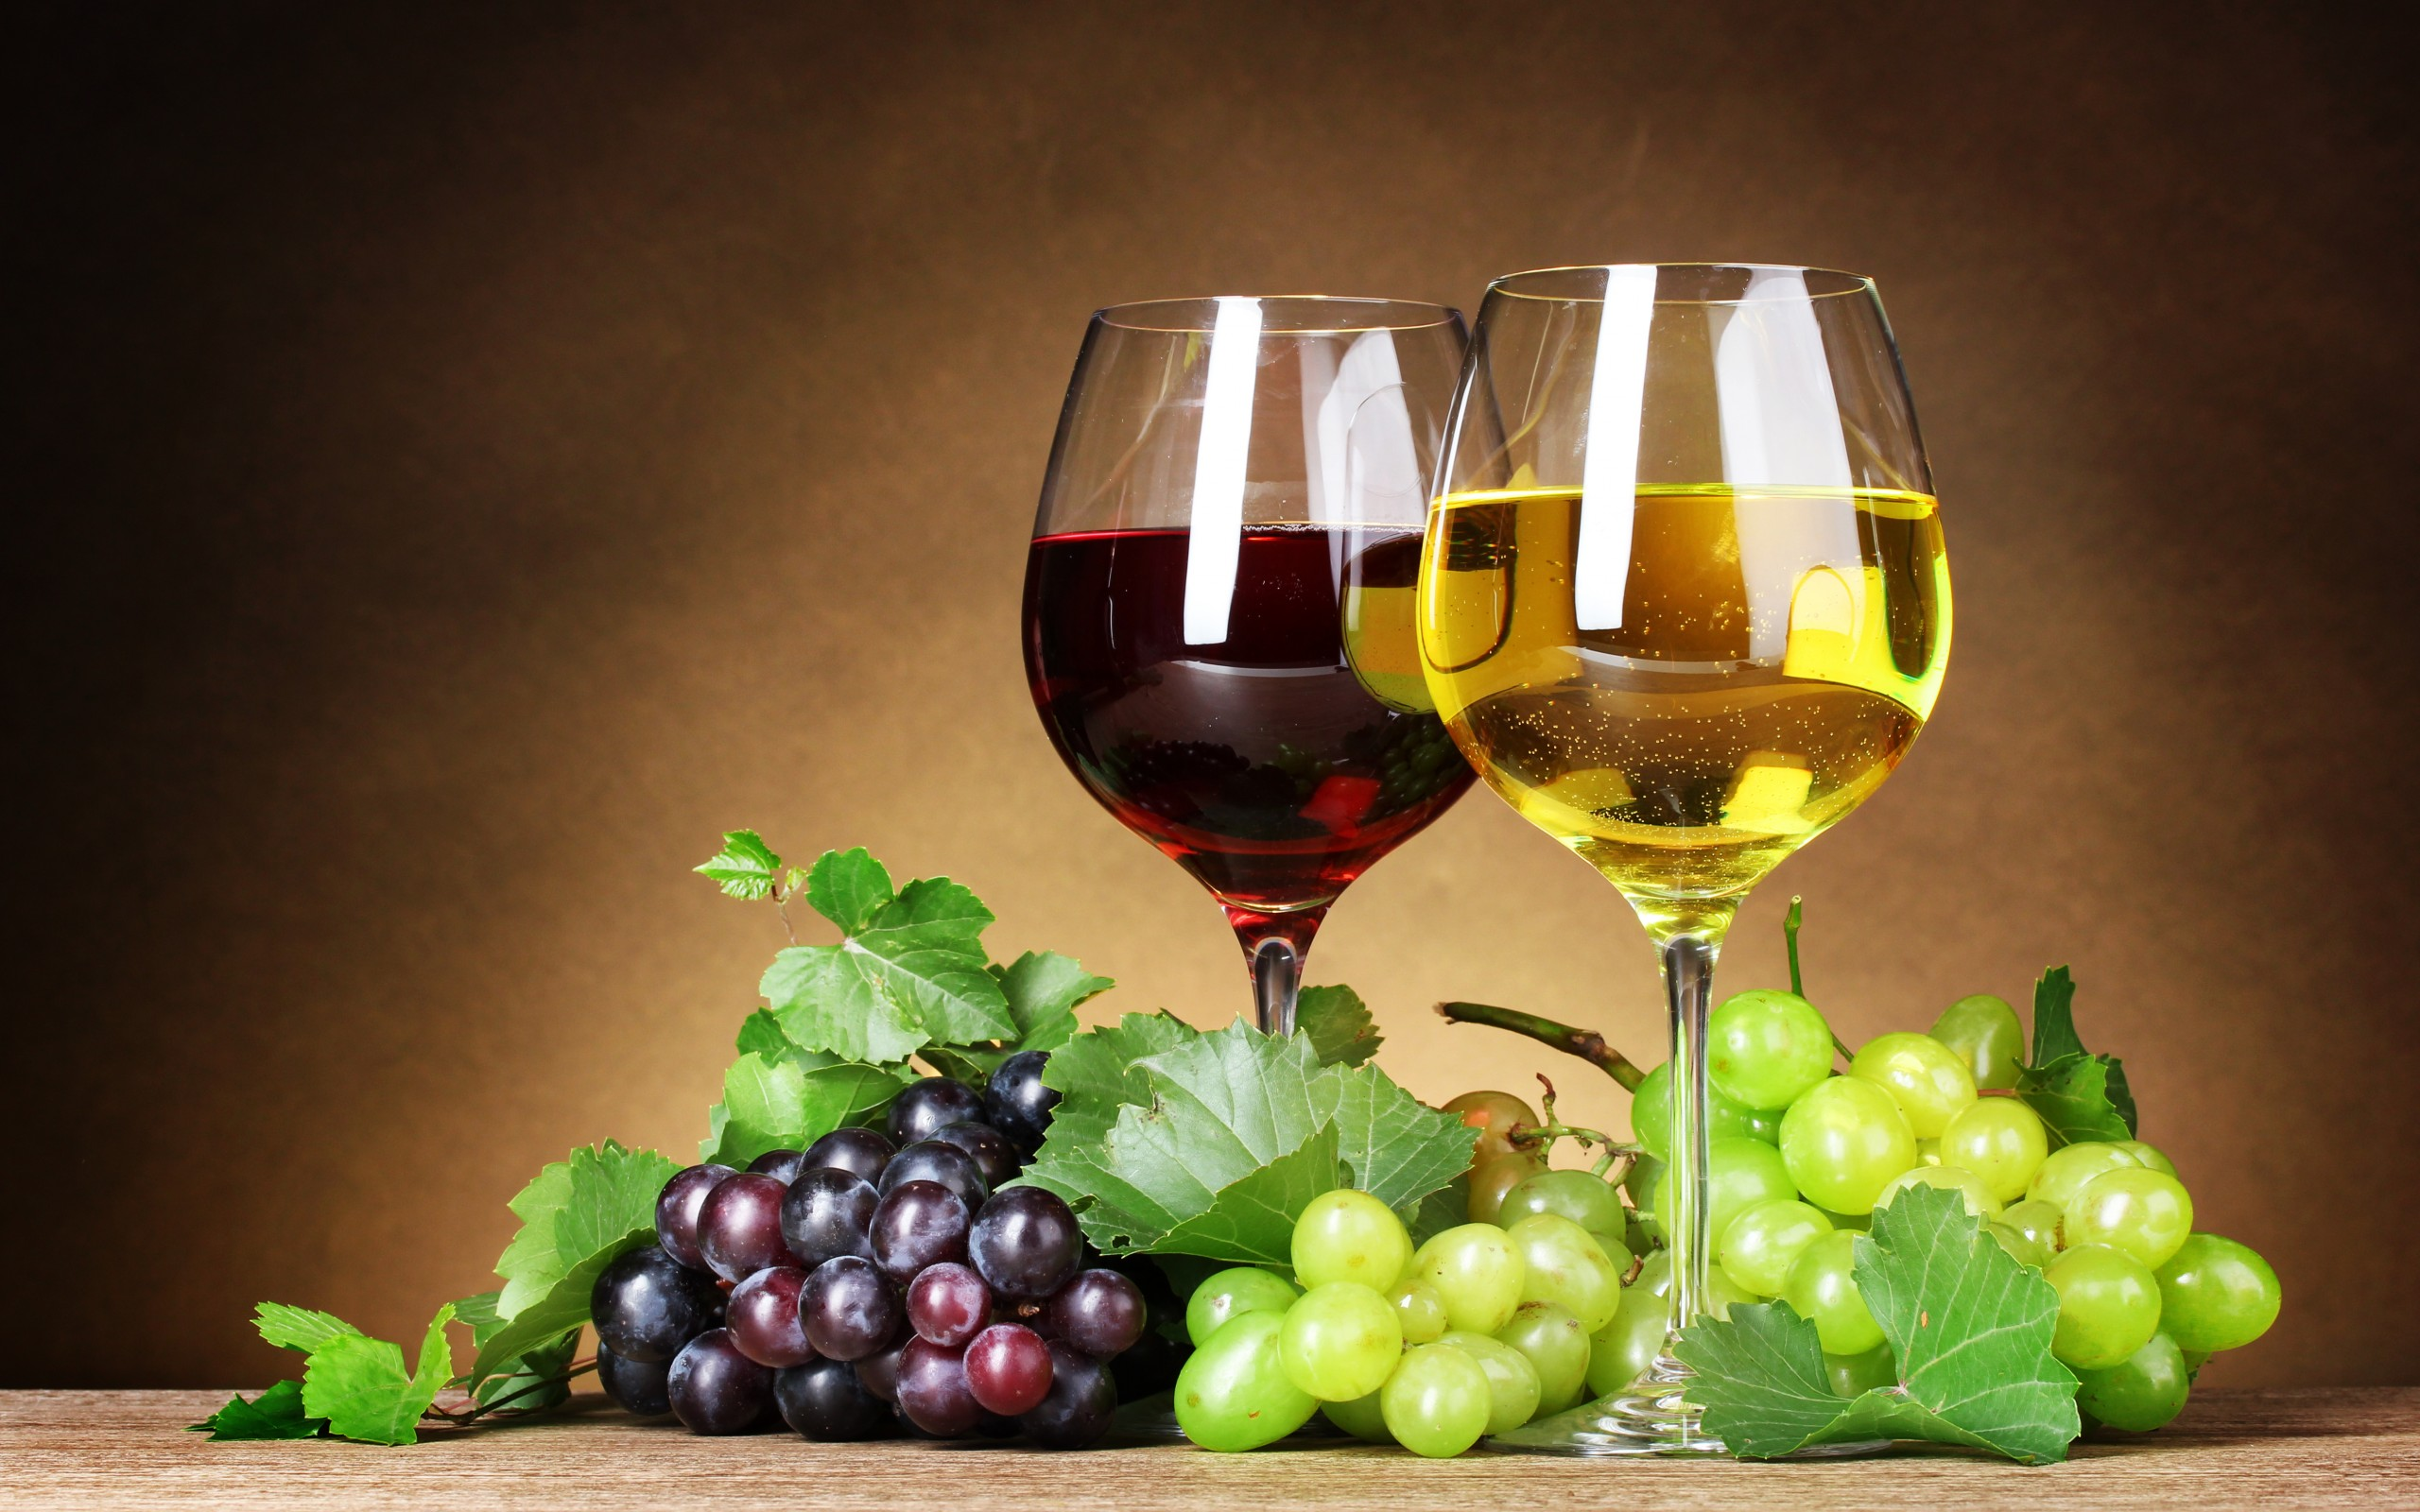 awesome-wine-wide-hd-wallpaper-download-images-free-new-best-desktop-background-pictures